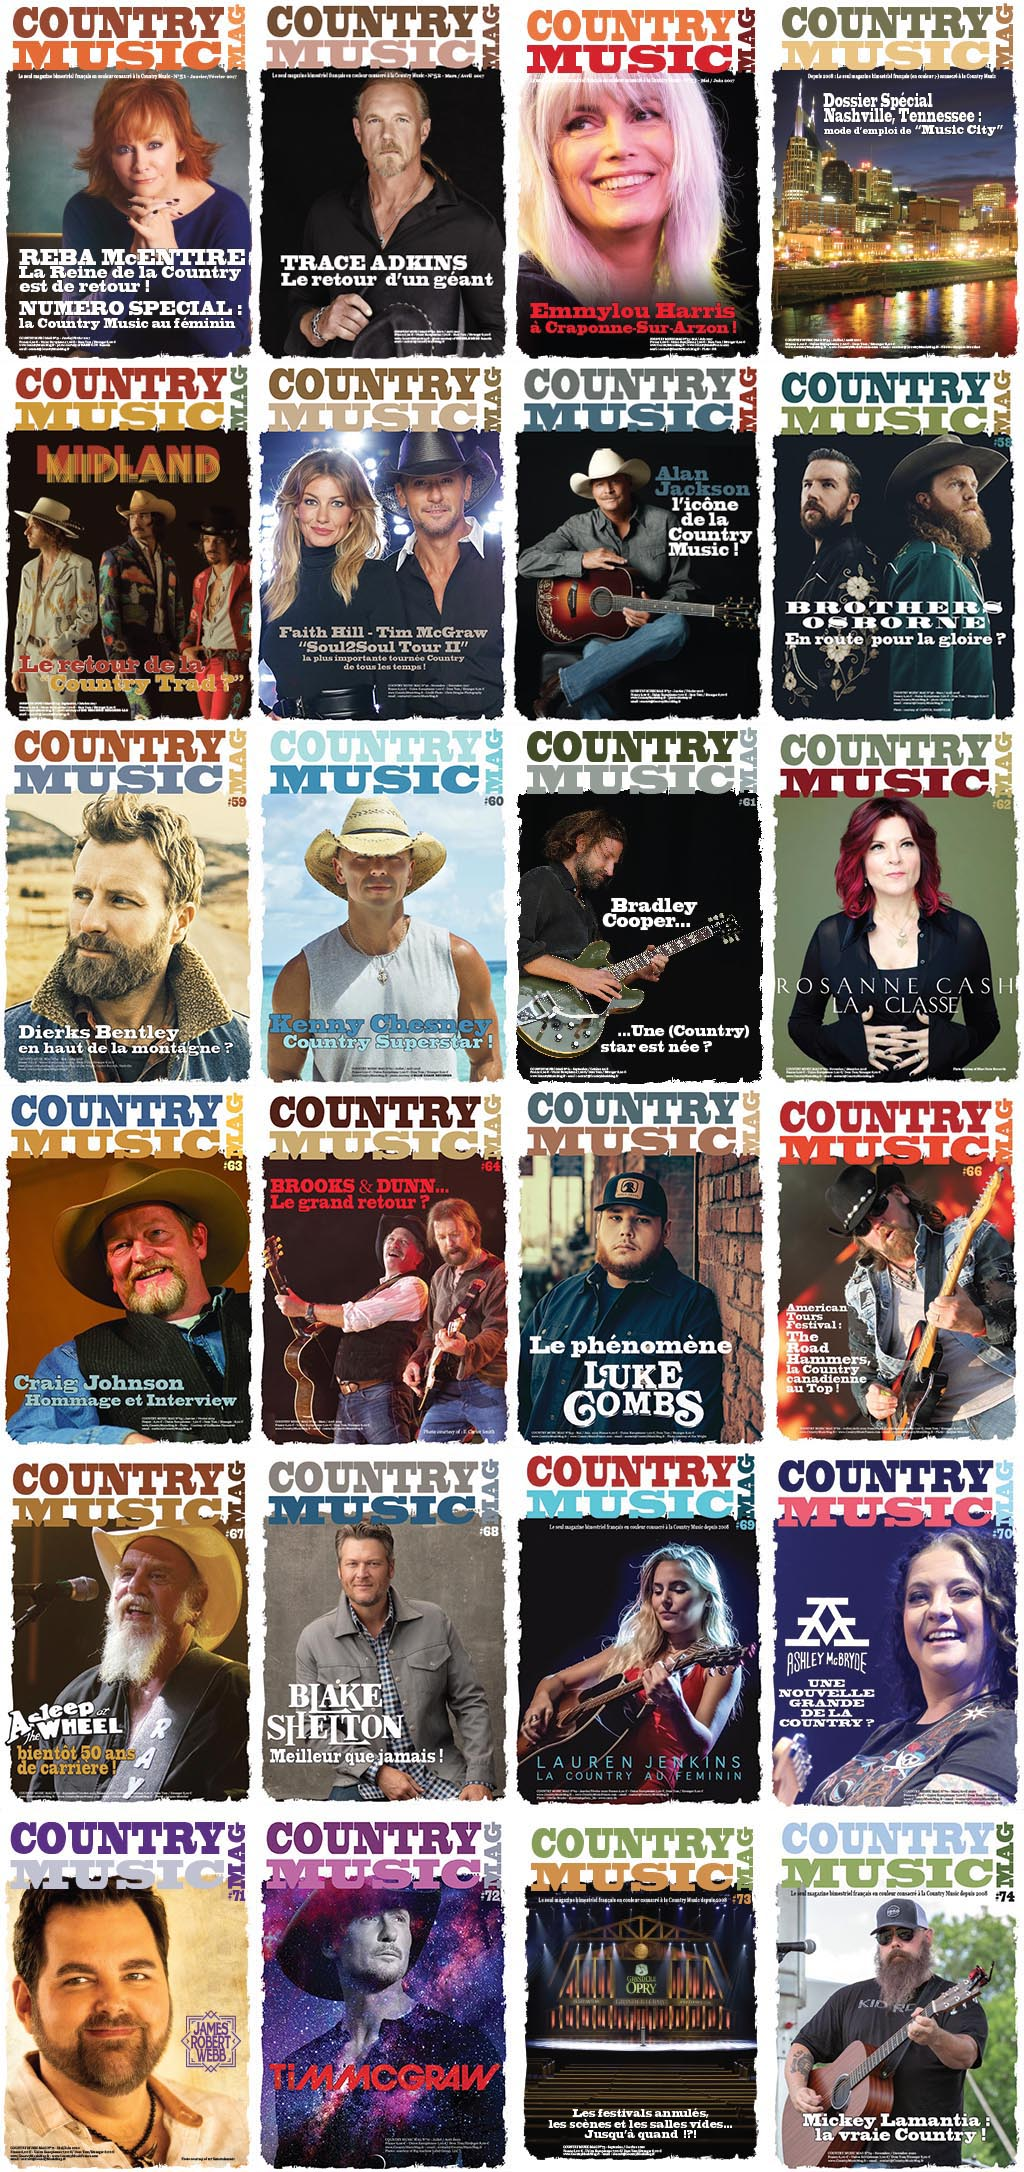 Country music Mag, France 24 issues covers